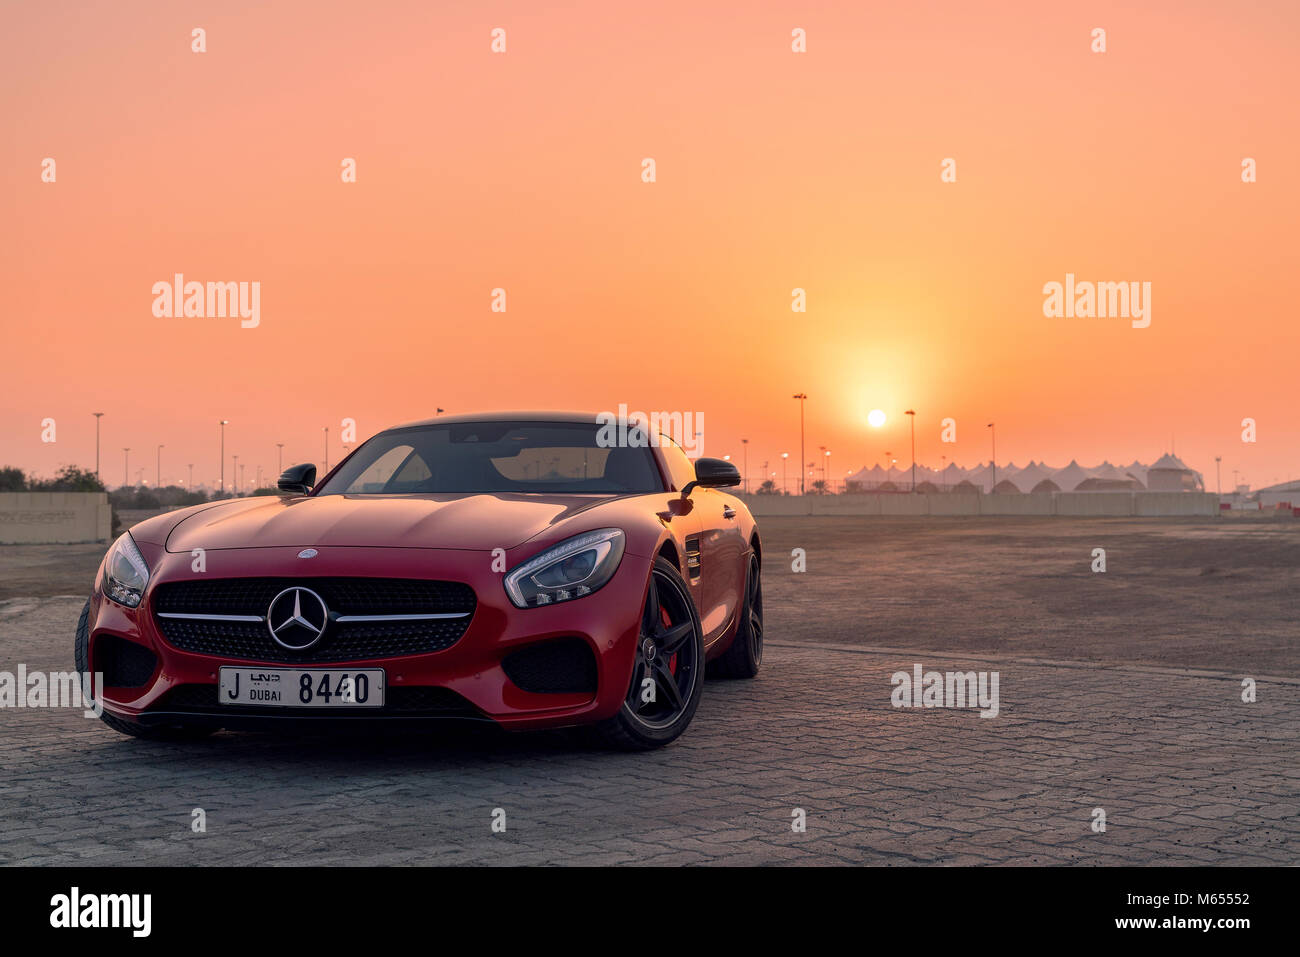 28th December 2017 - Abu Dhabi, UAE. Red Mercedes SLS GTs in front of a beautiful sunset. Stock Photo